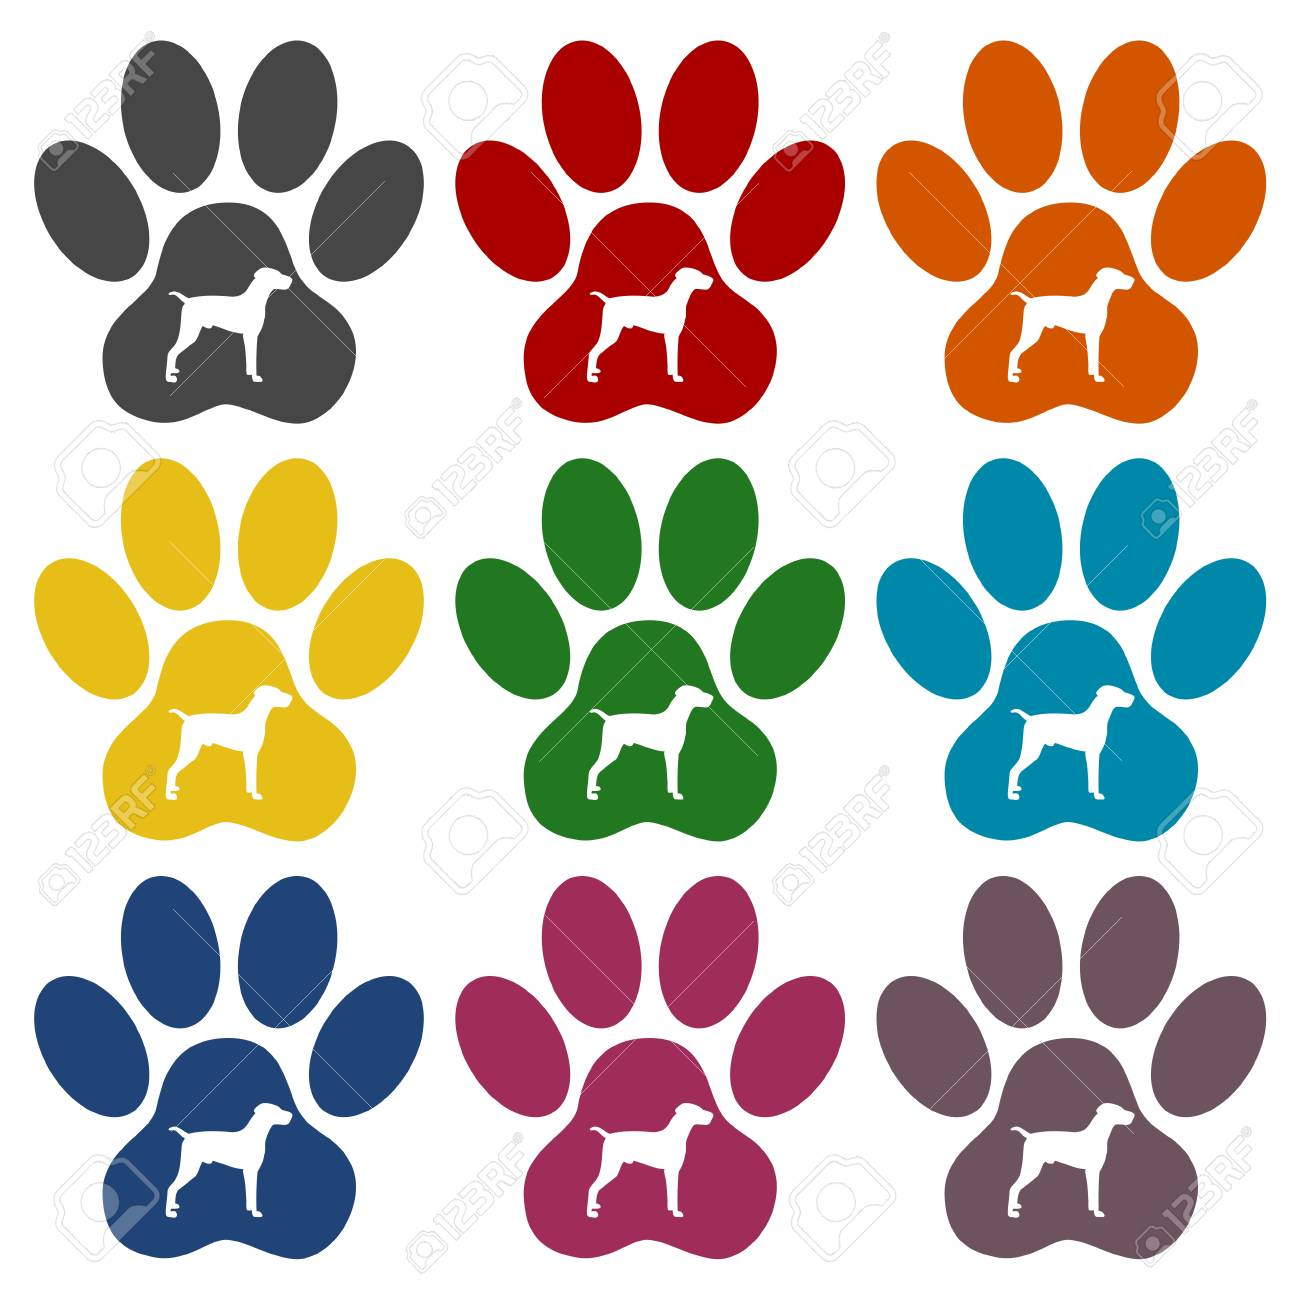 dog paw print icons set royalty free cliparts vectors and stock rh 123rf com Dog Paw Print Stencil dog paw print vector art